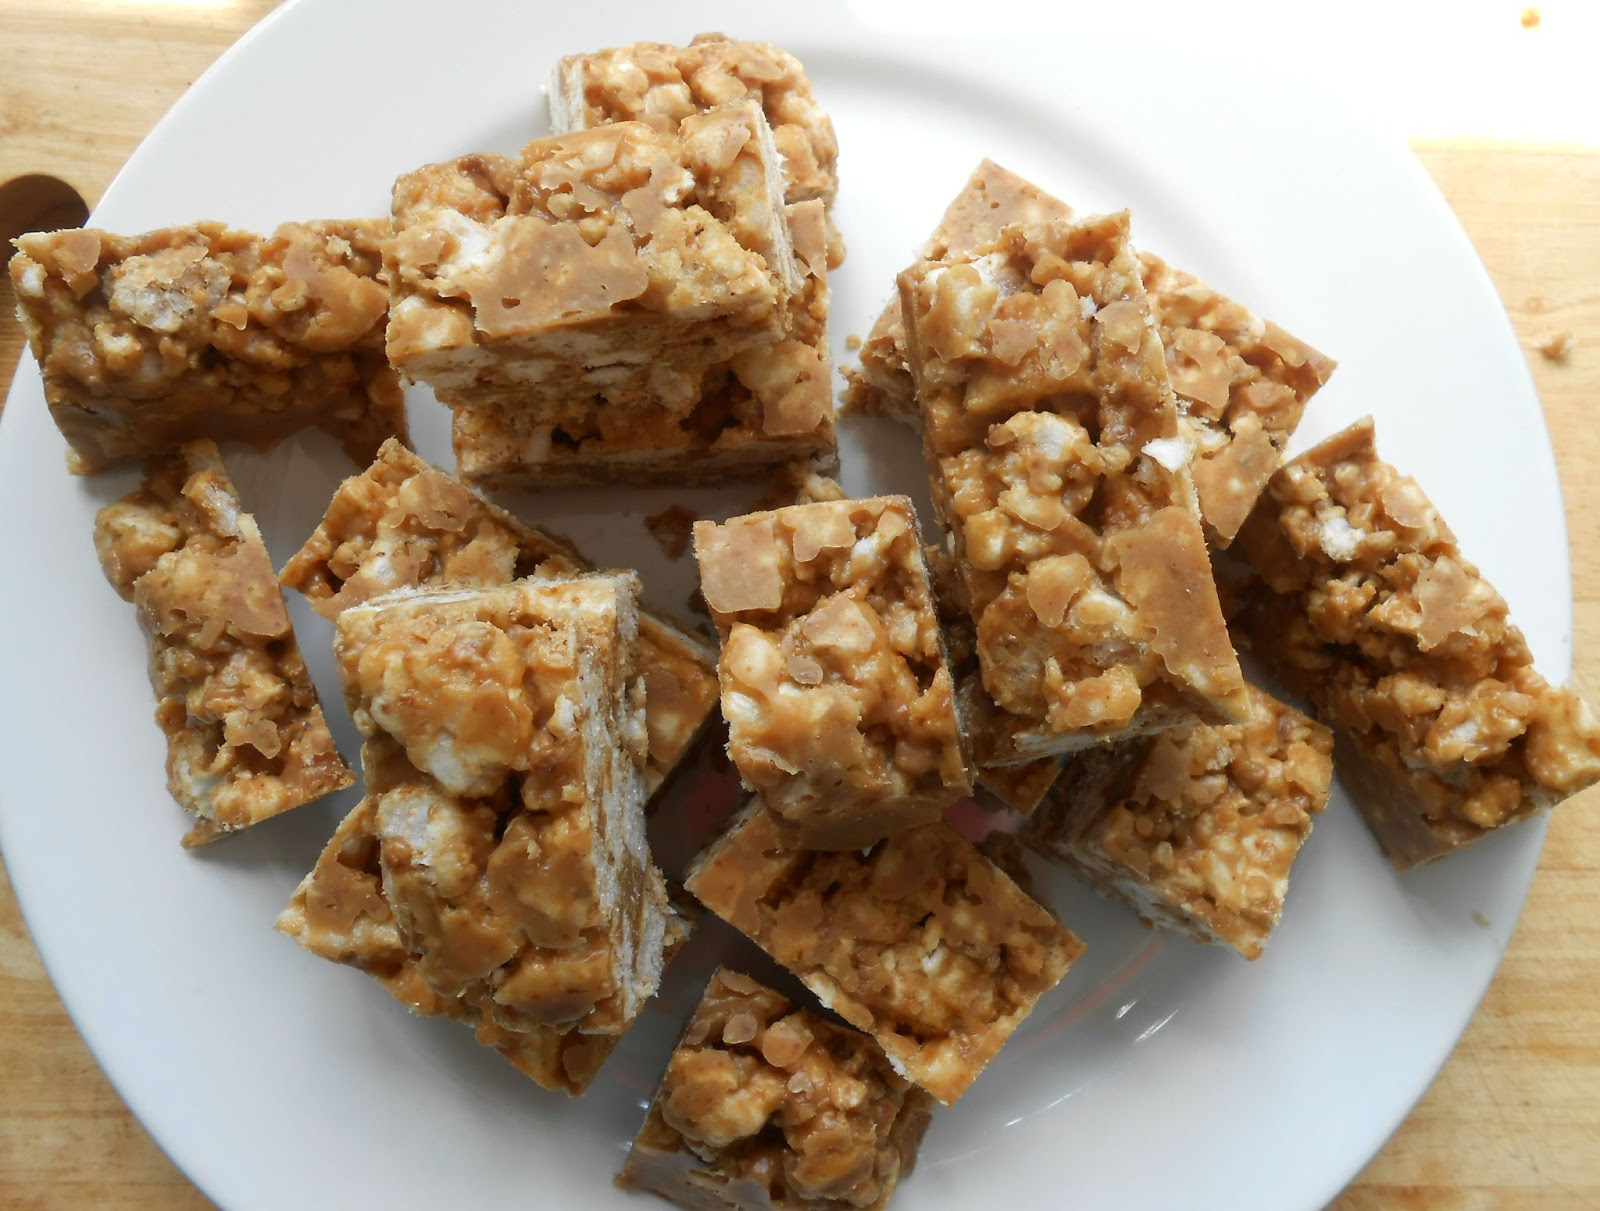 Rice and Peanut Butter Cake